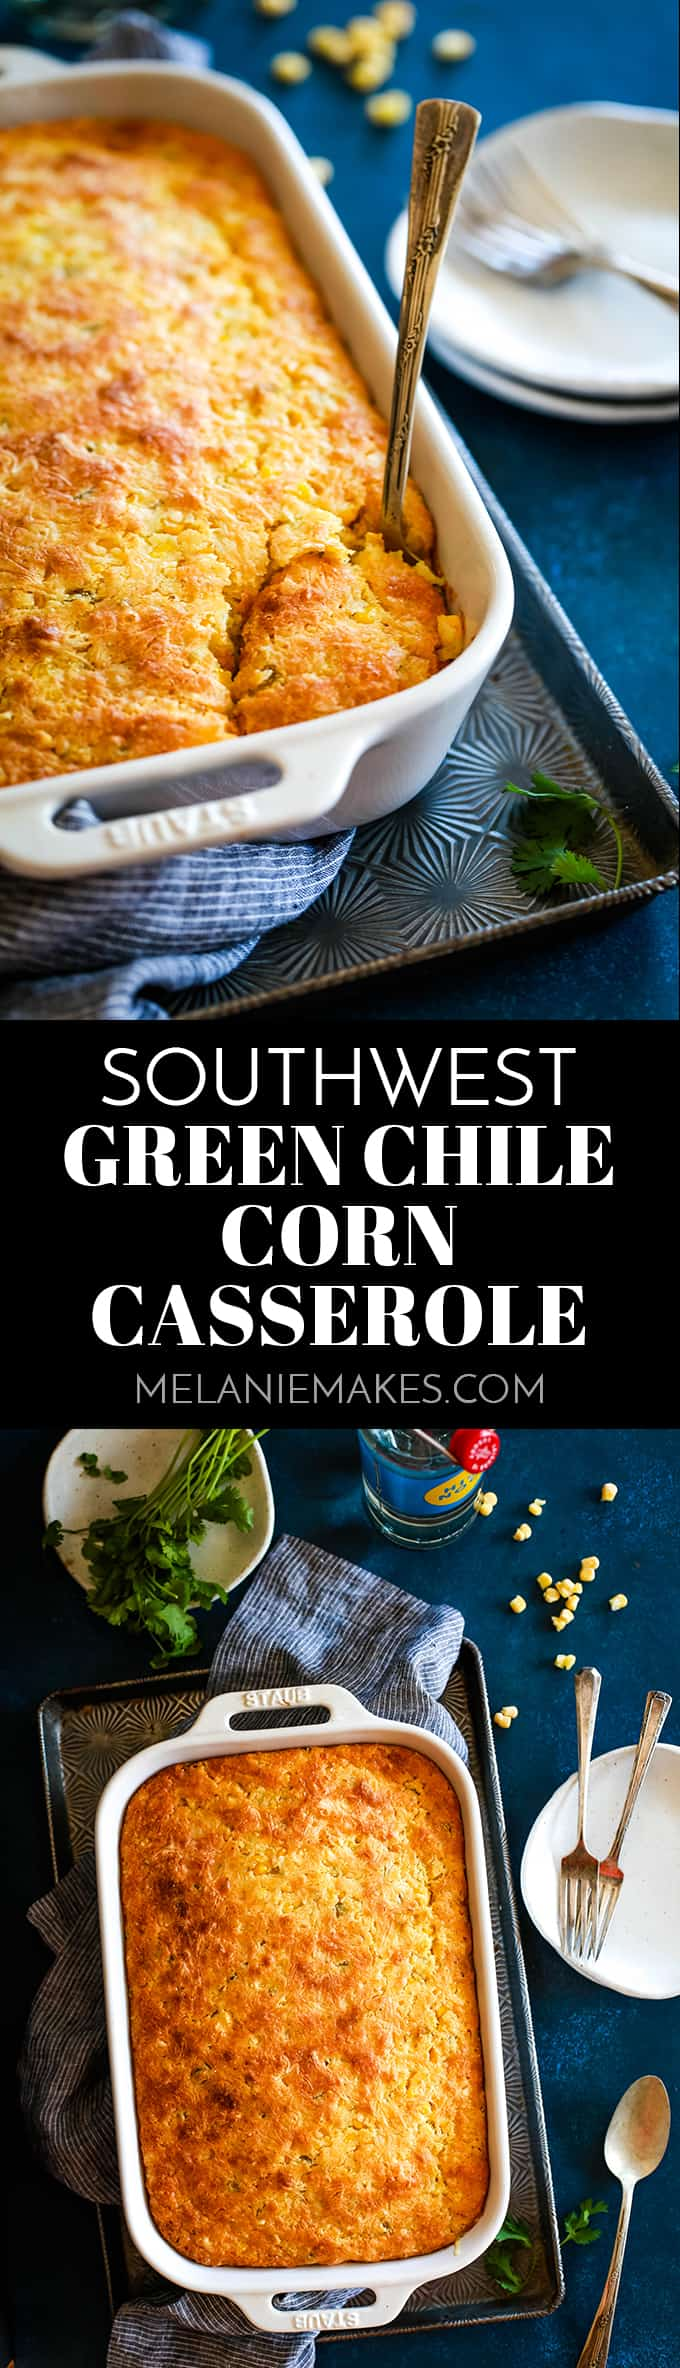 This Southwest Green Chile Corn Casserole couldn't be easier! Cumin and green chiles stud this velvety, comforting side that's full of Monterey Jack cheese. #corn #casserole #chile #sidedish #easyrecipe #southwest